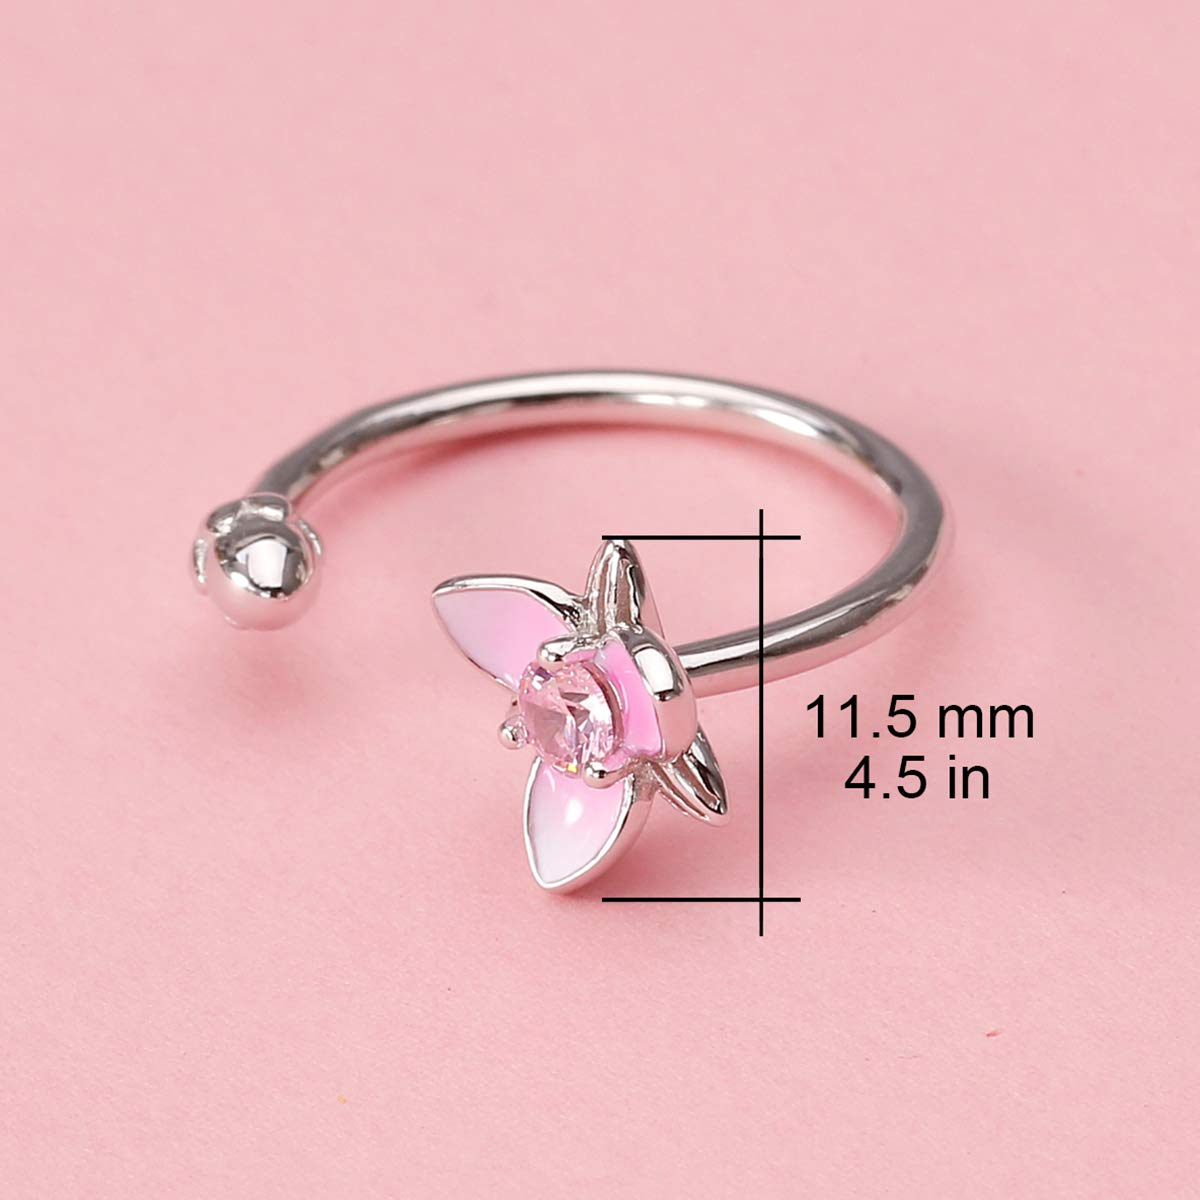 JEWME 925 Sterling Silver Women Lotus Flower Ring Adjustable Open Tail Fine Jewelry with High polished